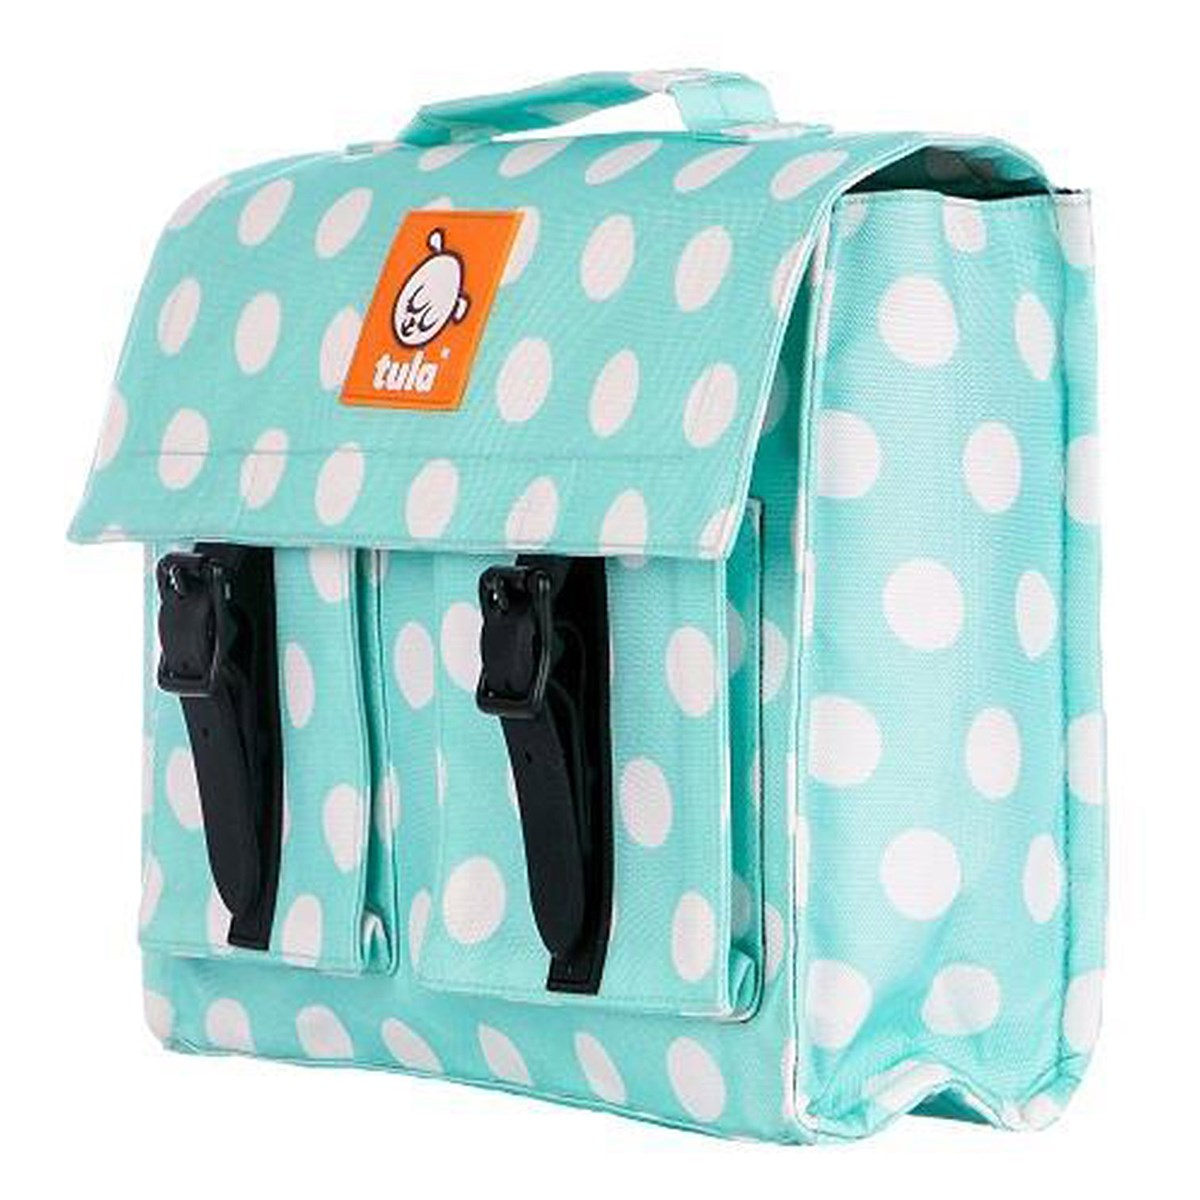 Mini Ryggsäck Mint Kuling Babyshop